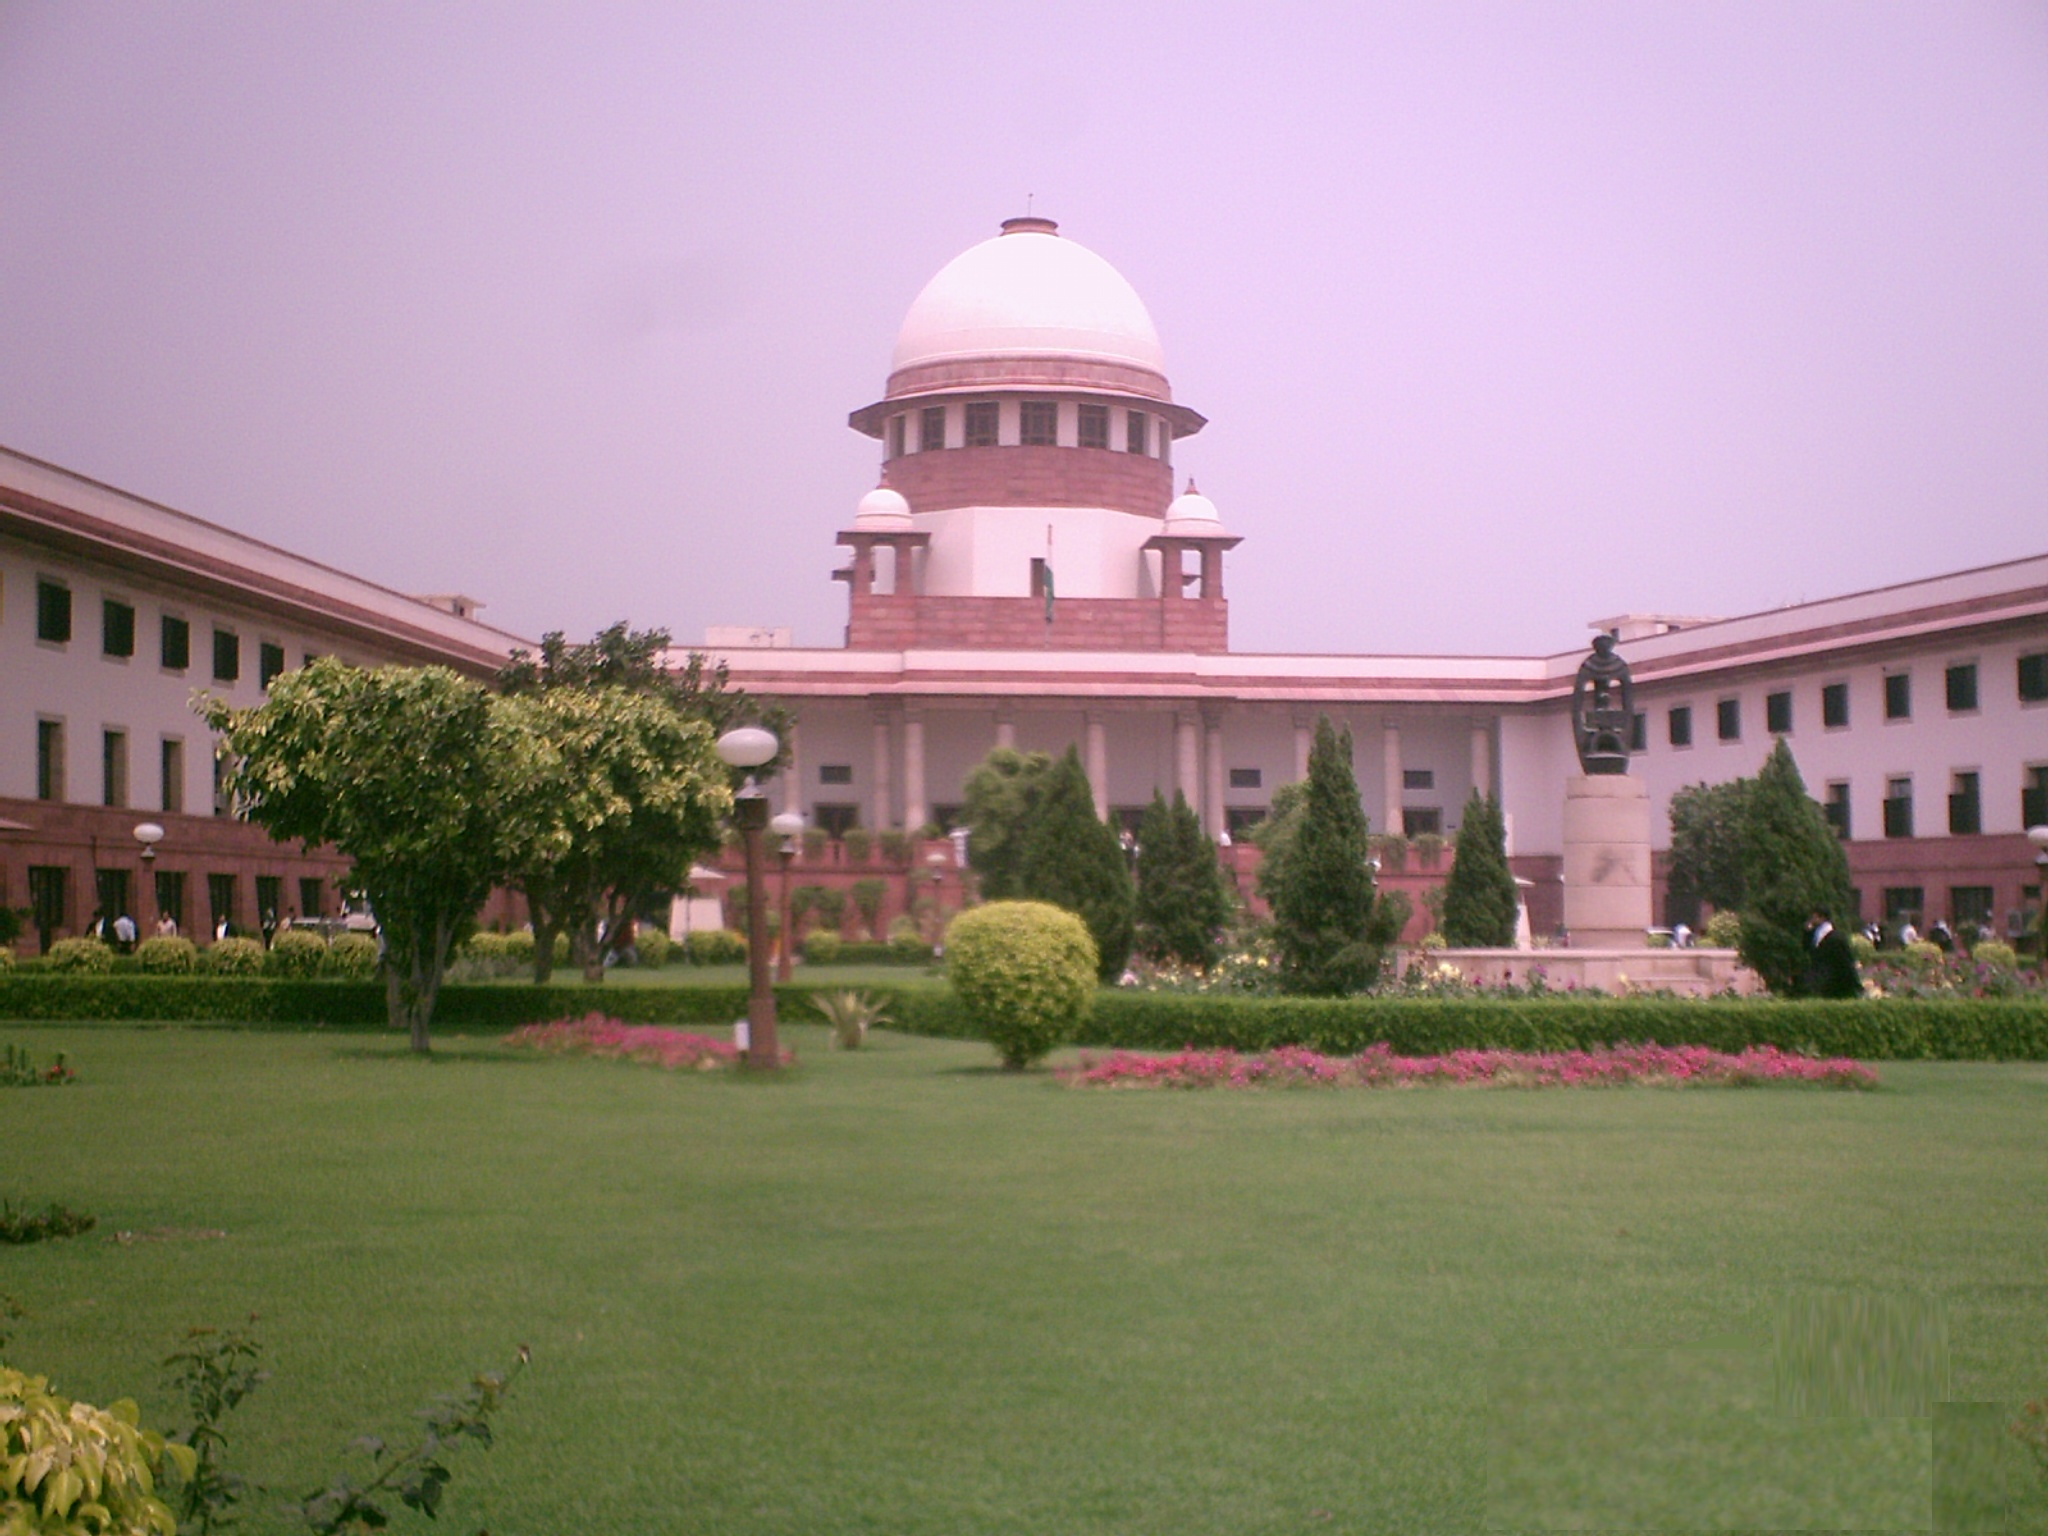 The Supreme Court of India, photographed about 170 metres from the main building outside the perimeter wall.